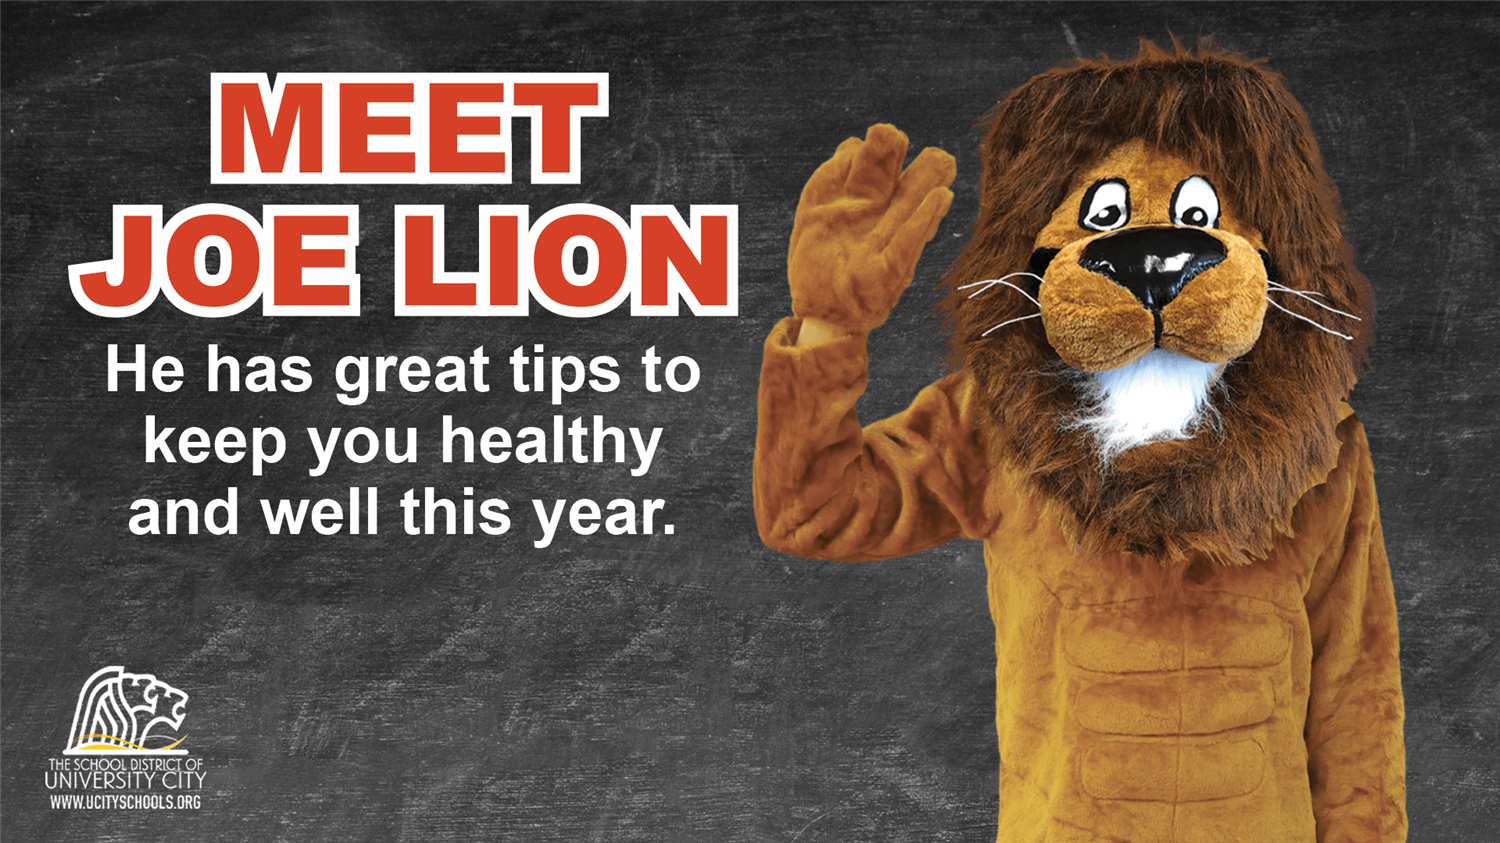 Meet Joe Lion - A Crusader for Health and Wellness